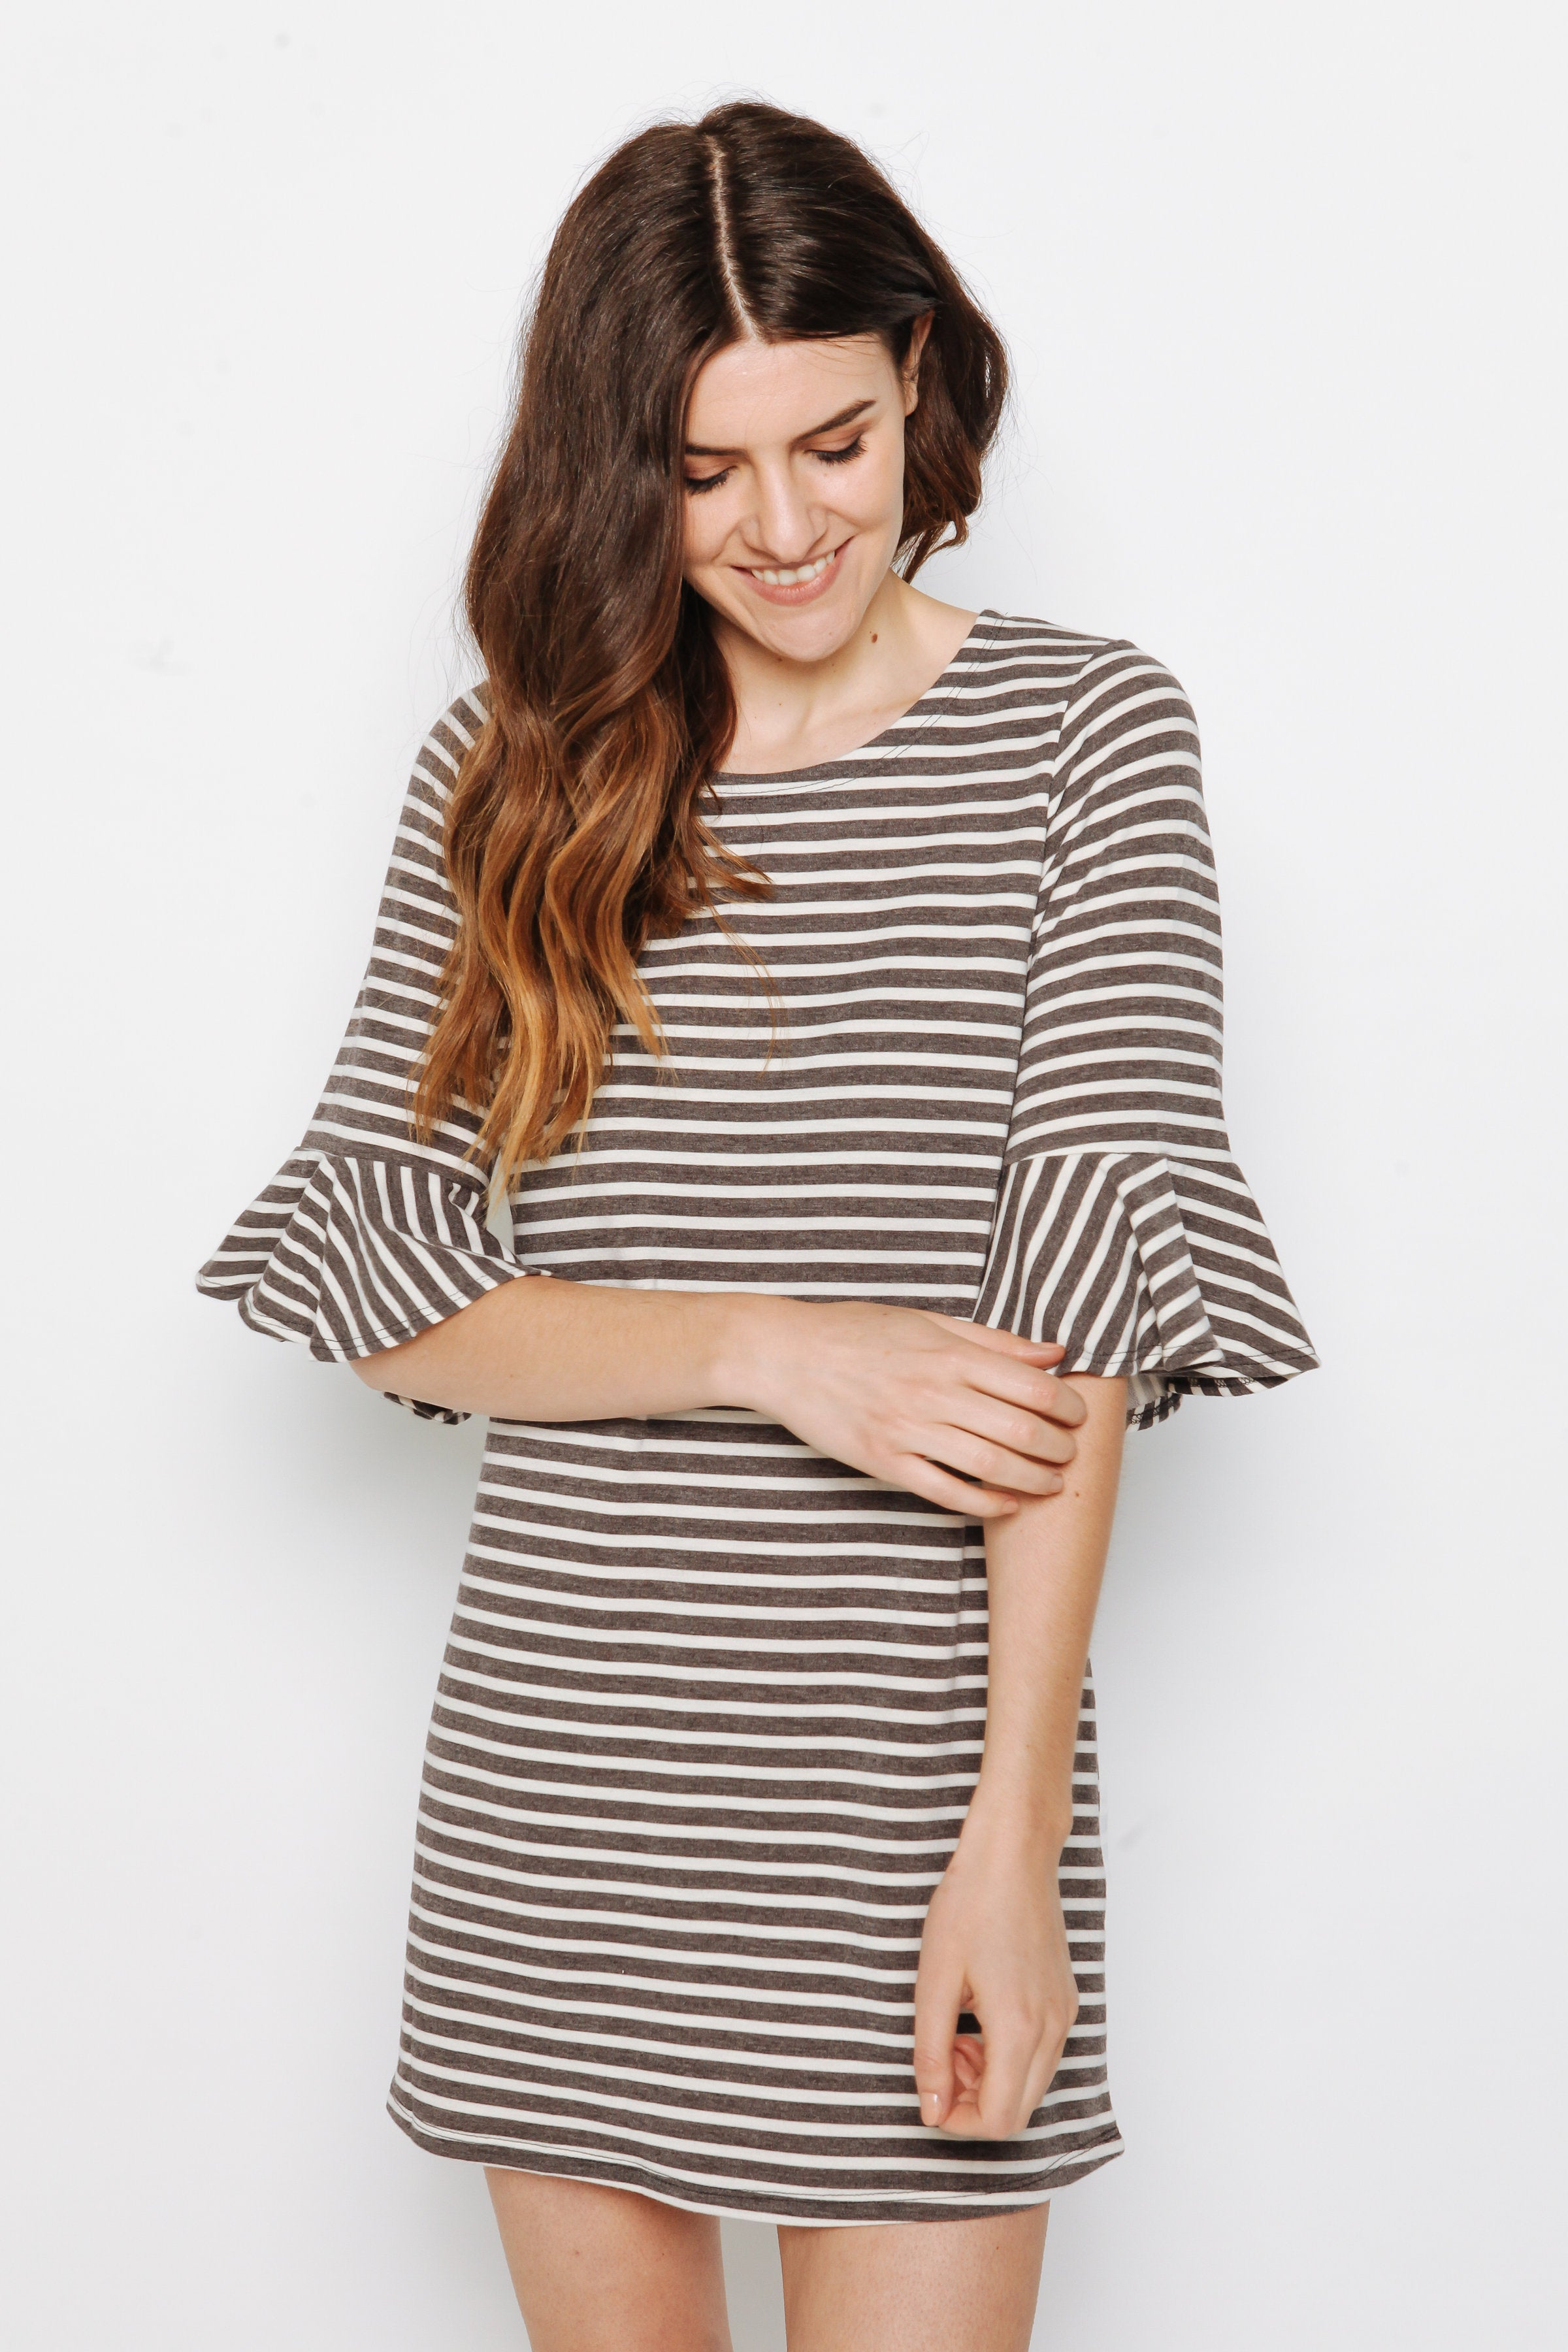 Corley Striped Dress - Charcoal